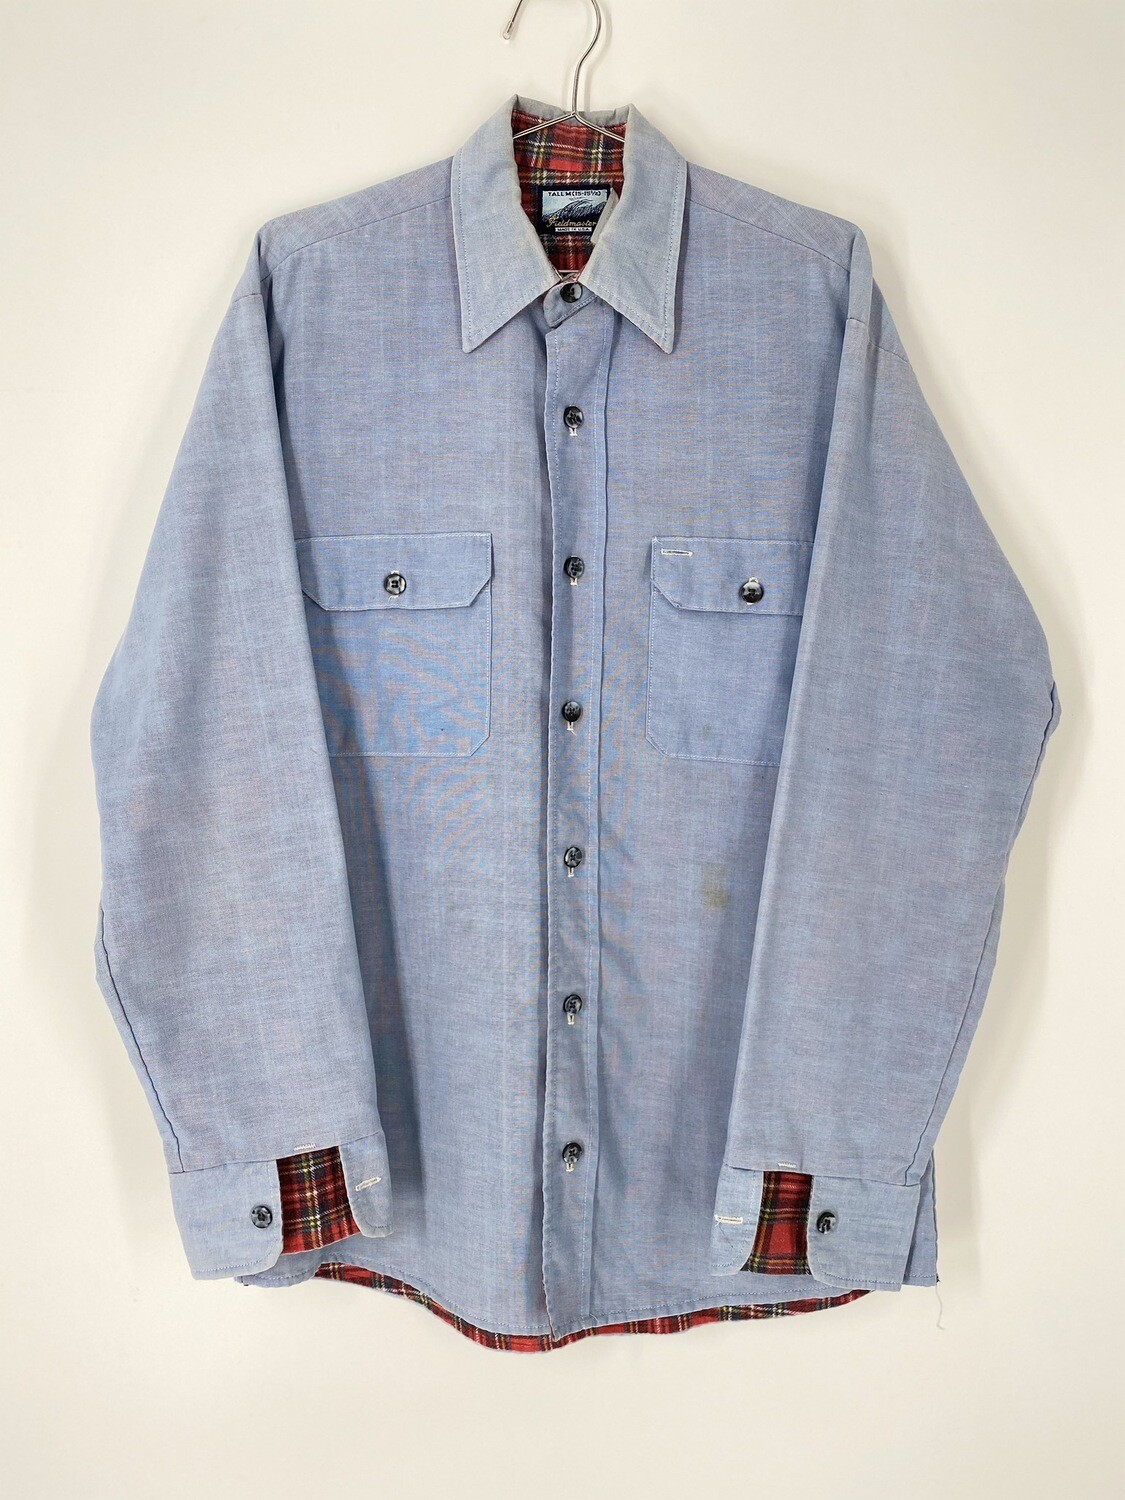 Fieldmaster Blue Chambray Shirt Jacket Size  M